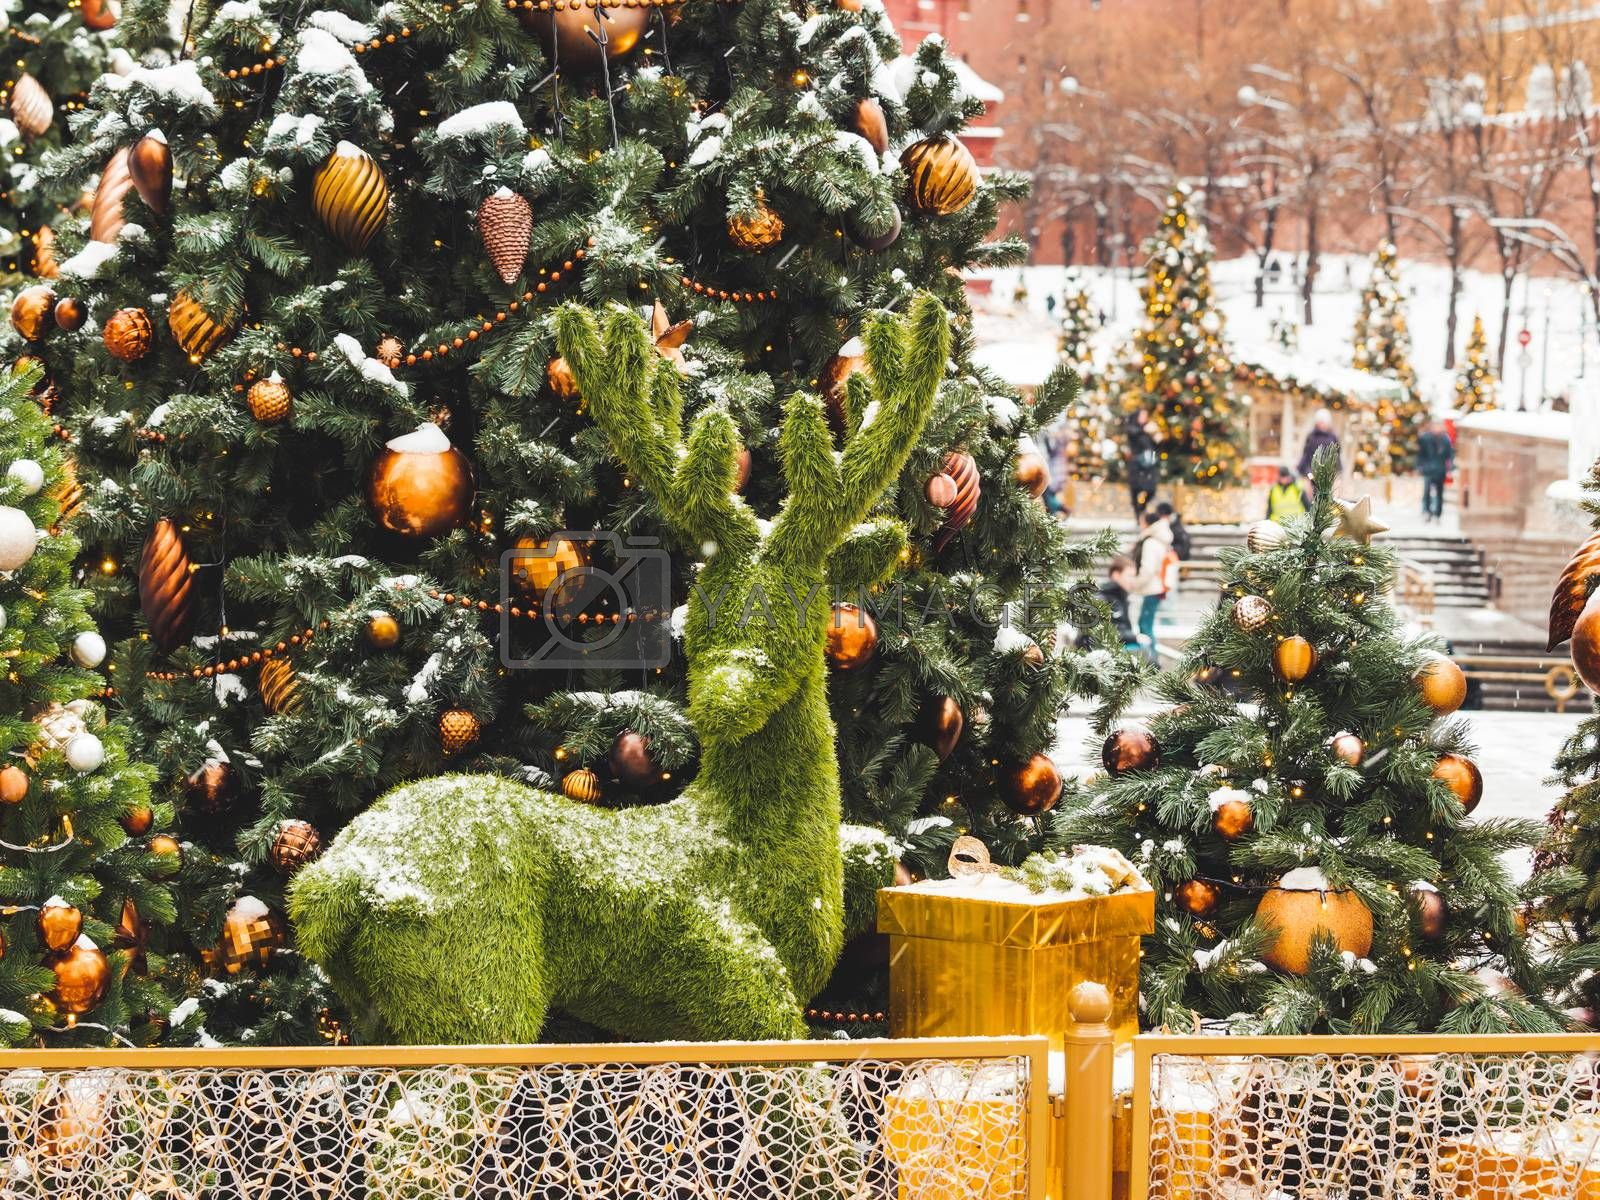 Christmas tree with golden and bronze balls and reindeer made of artificial grass. Outdoor decorations for New Year celebration. Moscow, Russia.